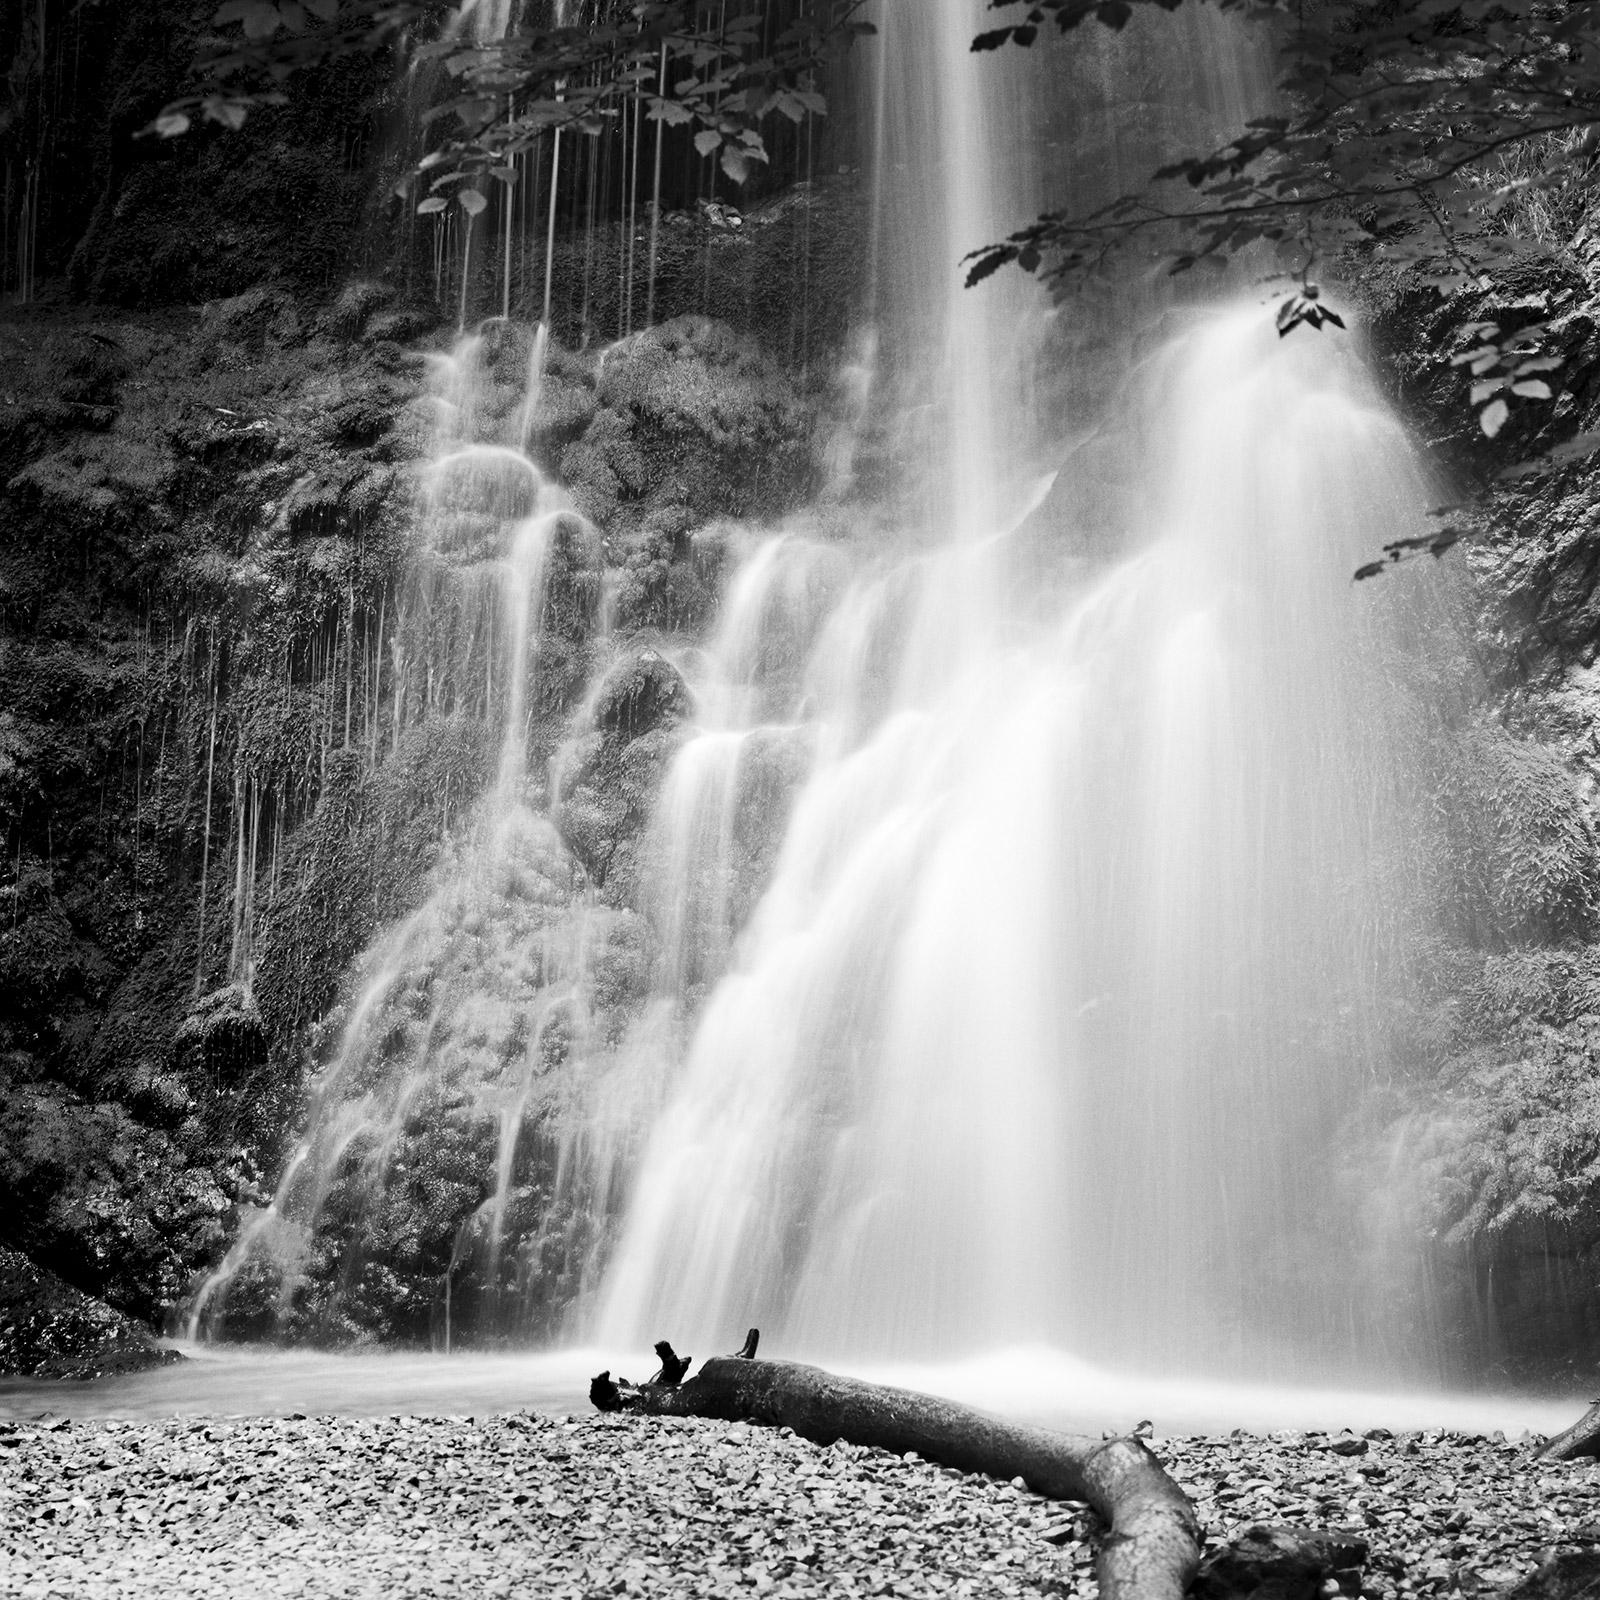 Waterfall, Bavaria, Germany, fine art black and white photography, landscapes